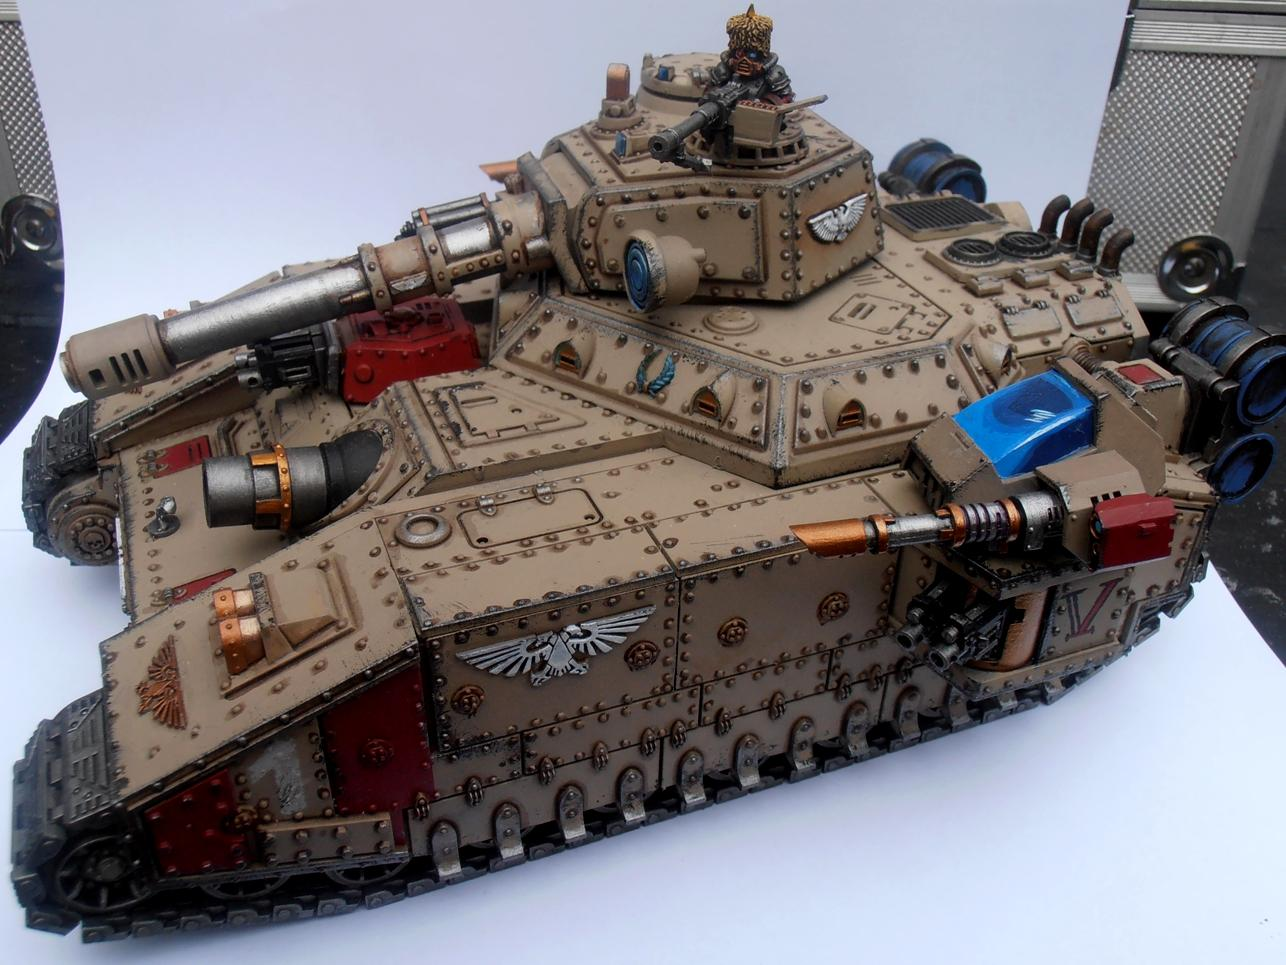 Baneblade, Guard, Imperial, Imperial Guard, Tank, Vostroyan